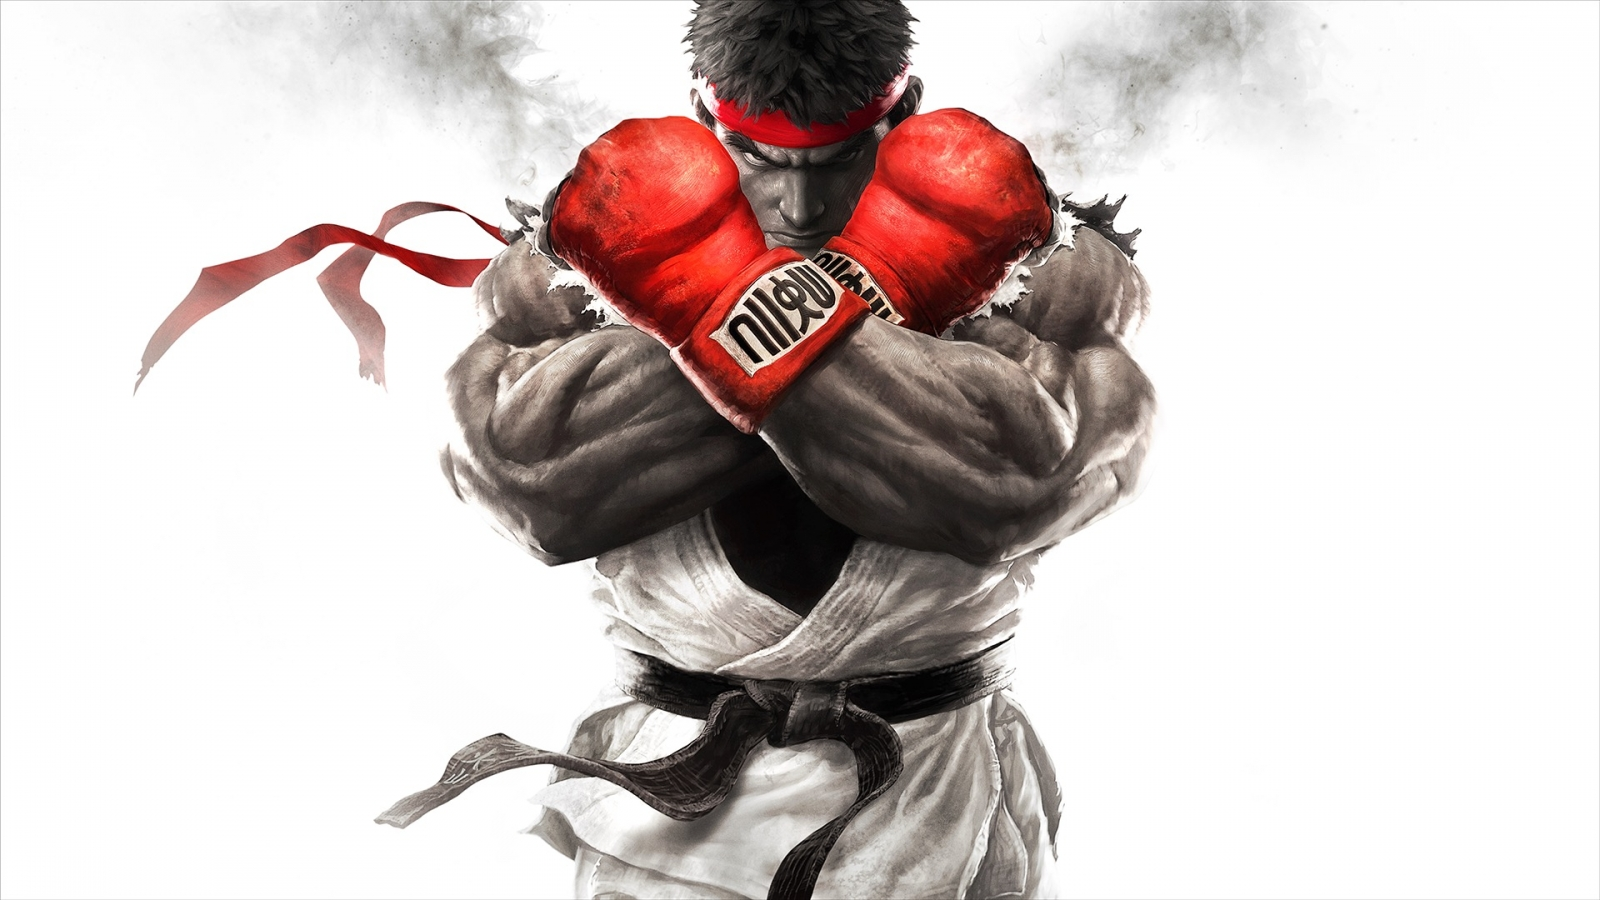 street fighter ryu moves